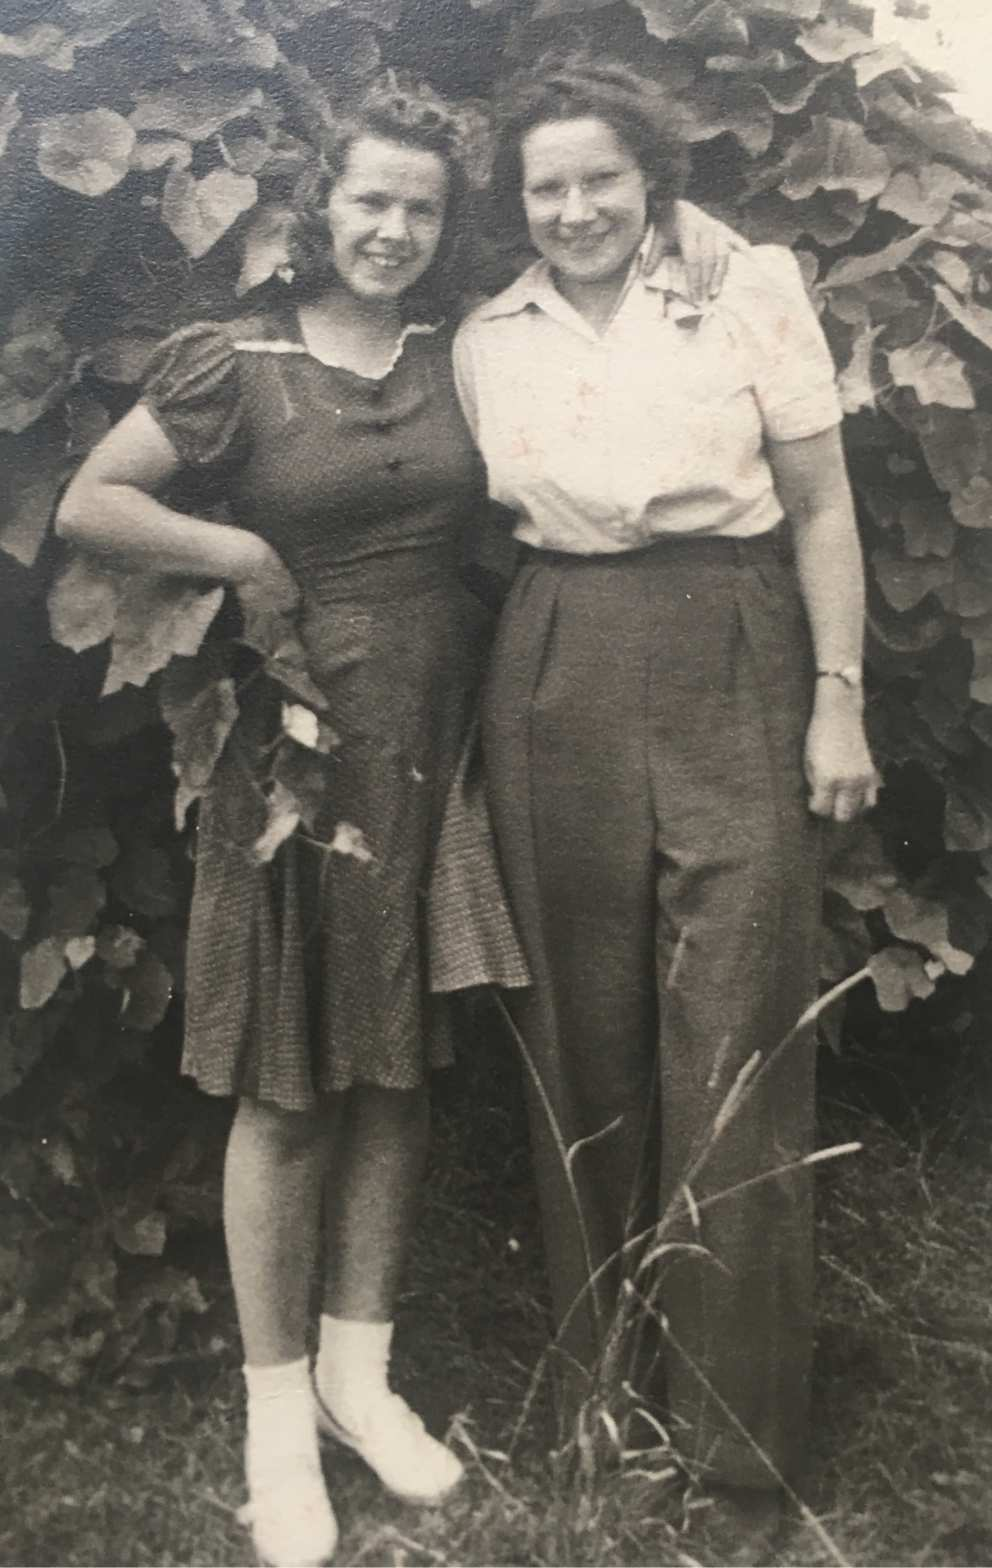 Ruth and Mary Donovan in the late 30s